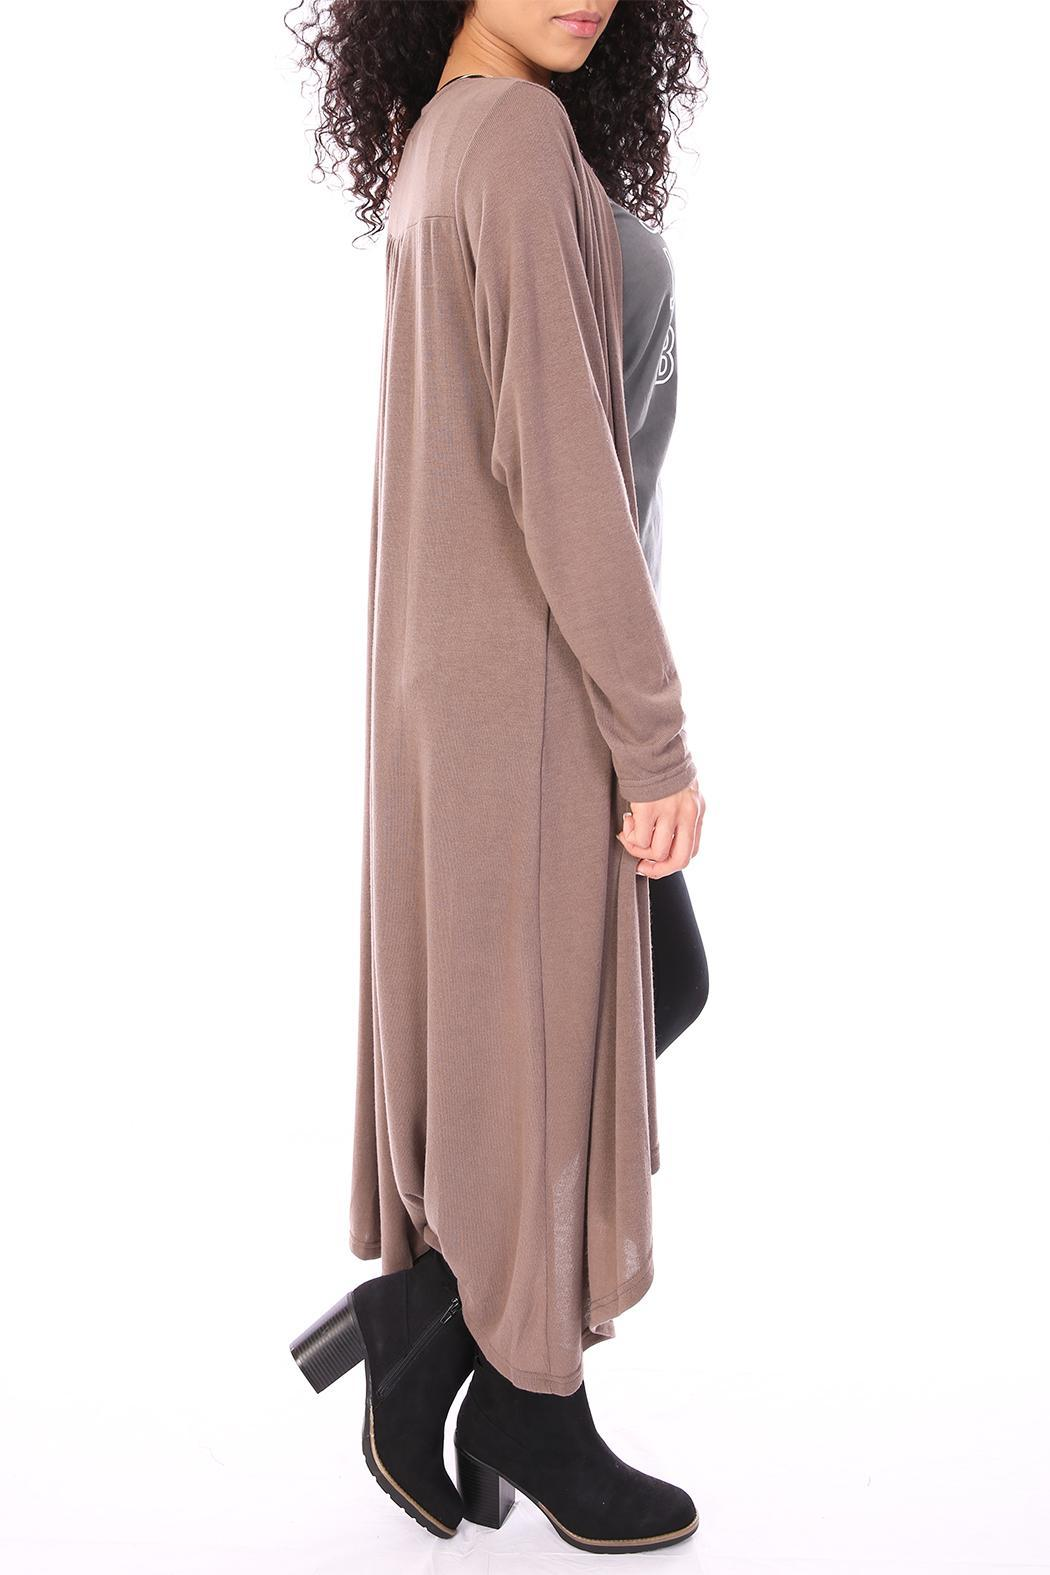 She Sky Brown Duster Cardigan From Dallas By Tangled